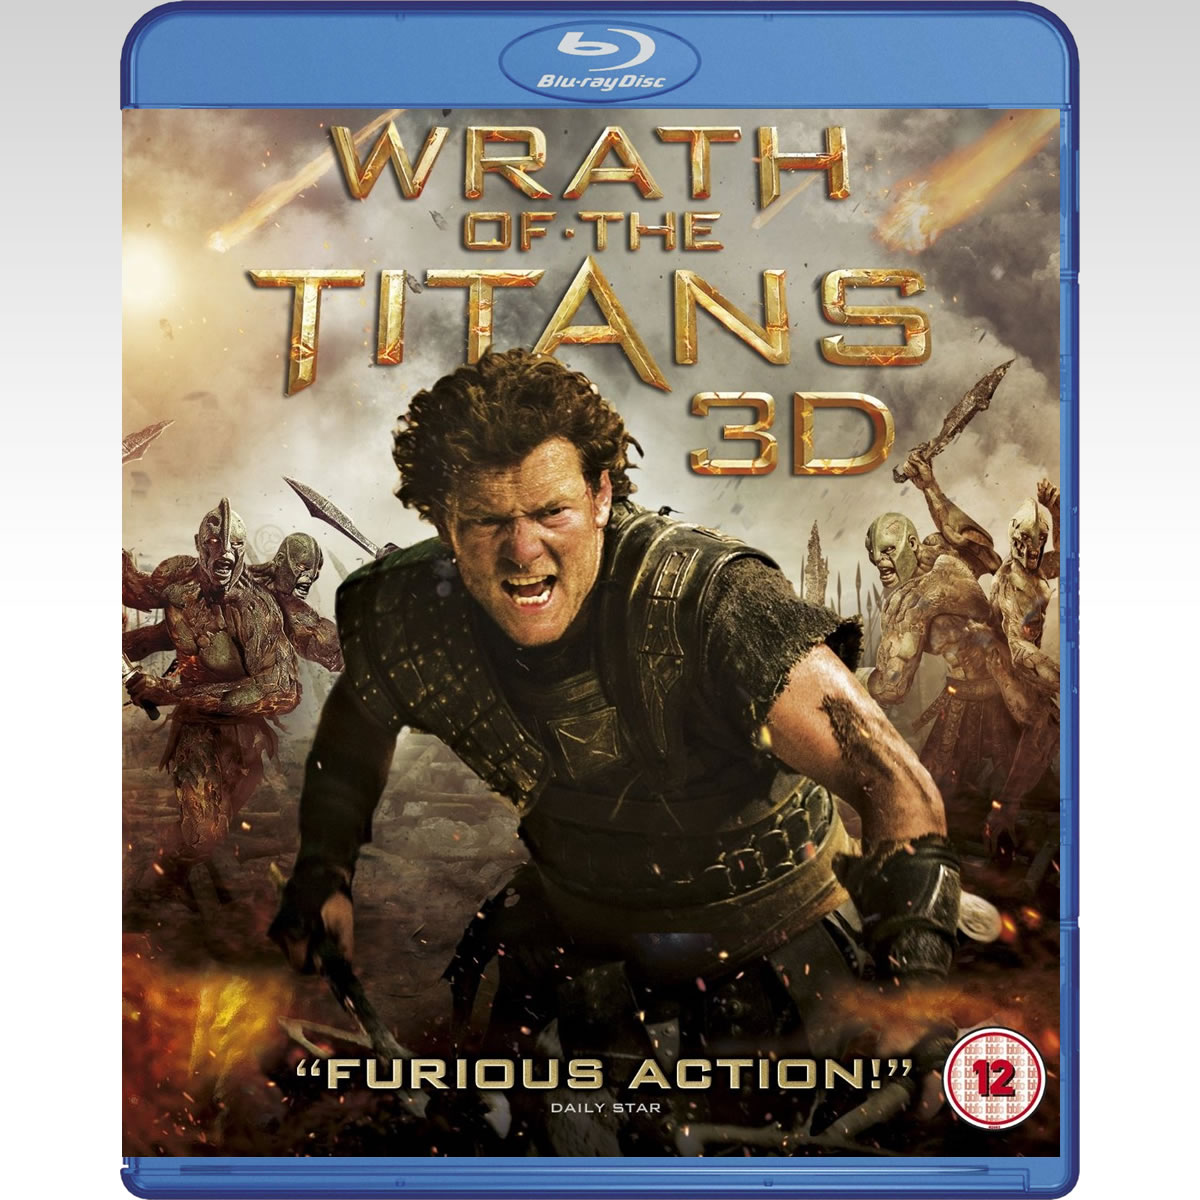 WRATH OF THE TITANS 3D - � ���� ��� ������� 3D (BLU-RAY 3D + BLU-RAY)